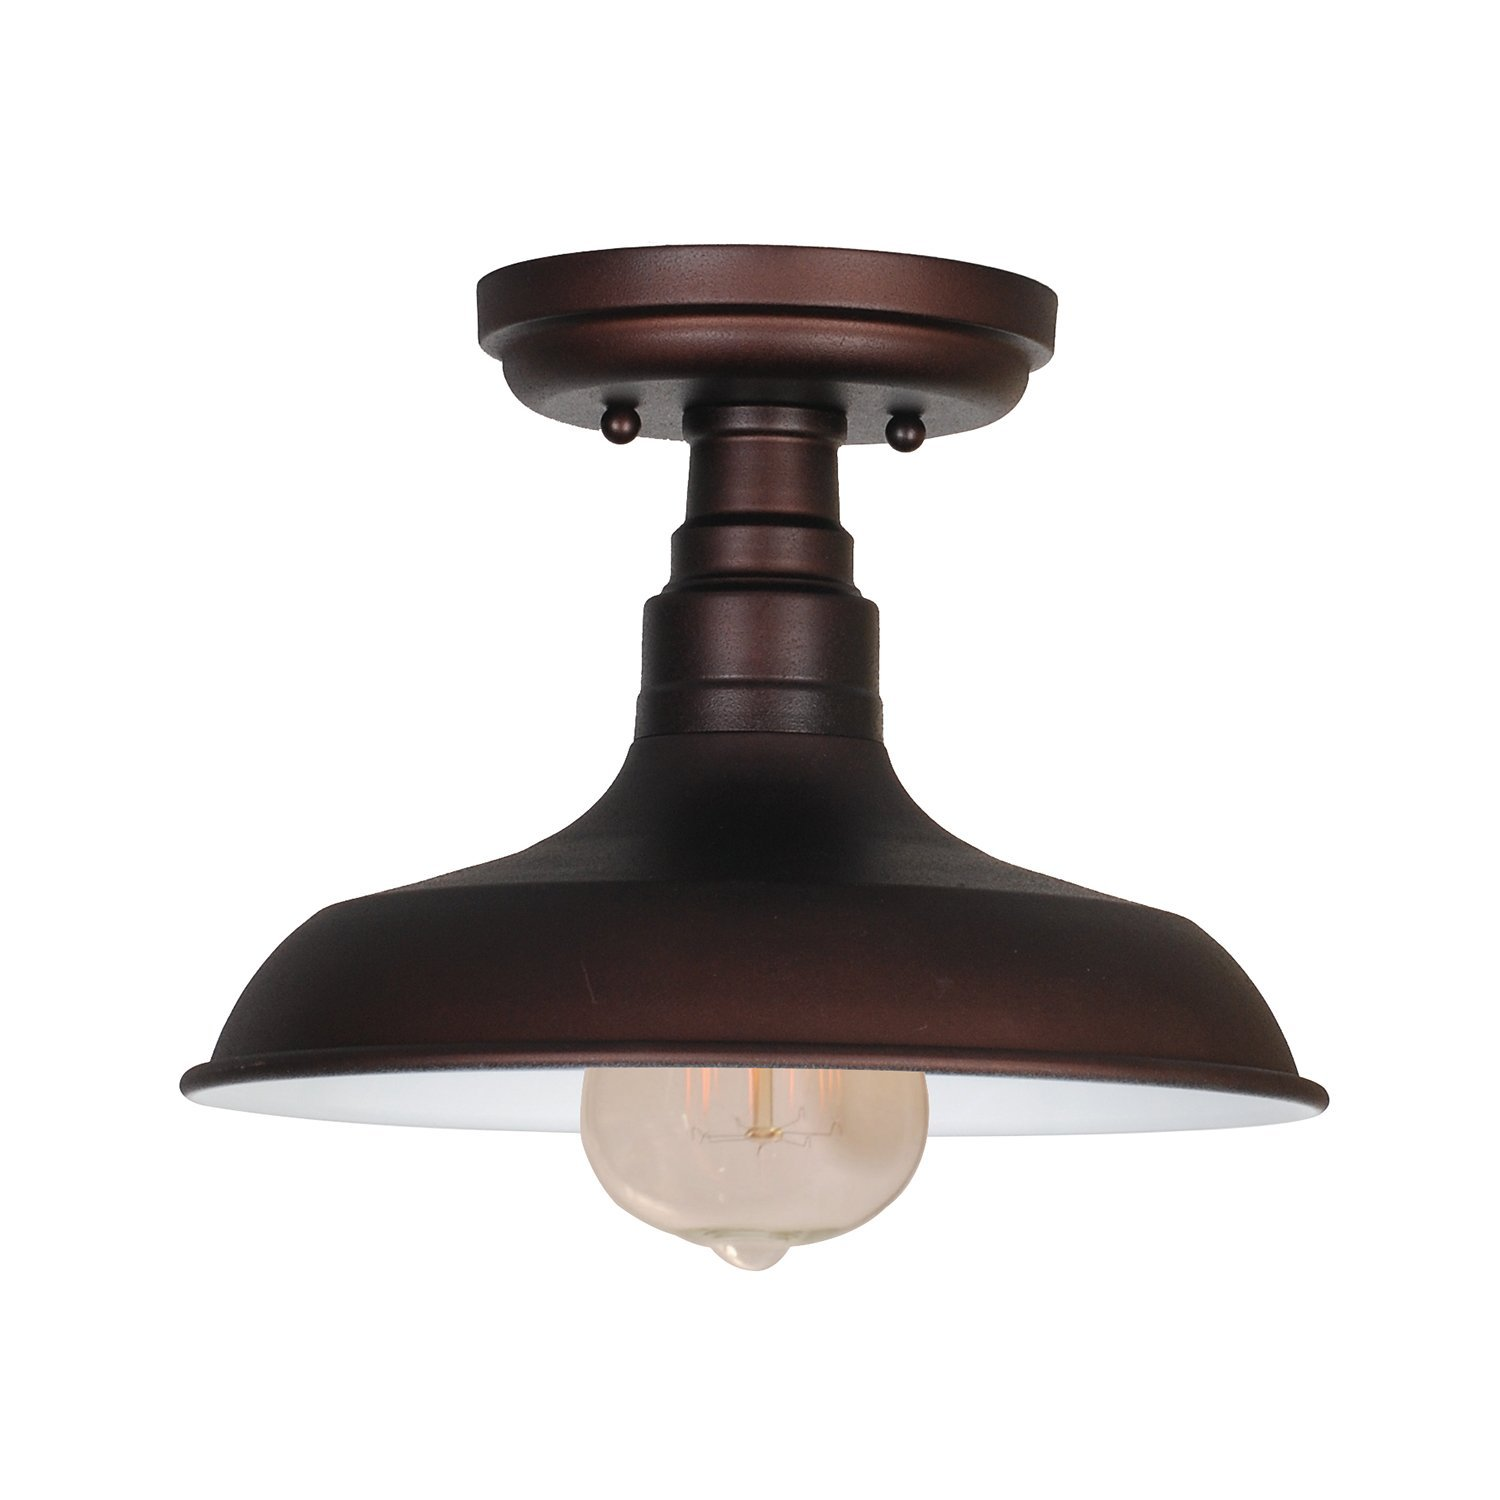 Design House Kimball 1-Light Ceiling Mount Industrial Light, Coffee Bronze Finish - 519884